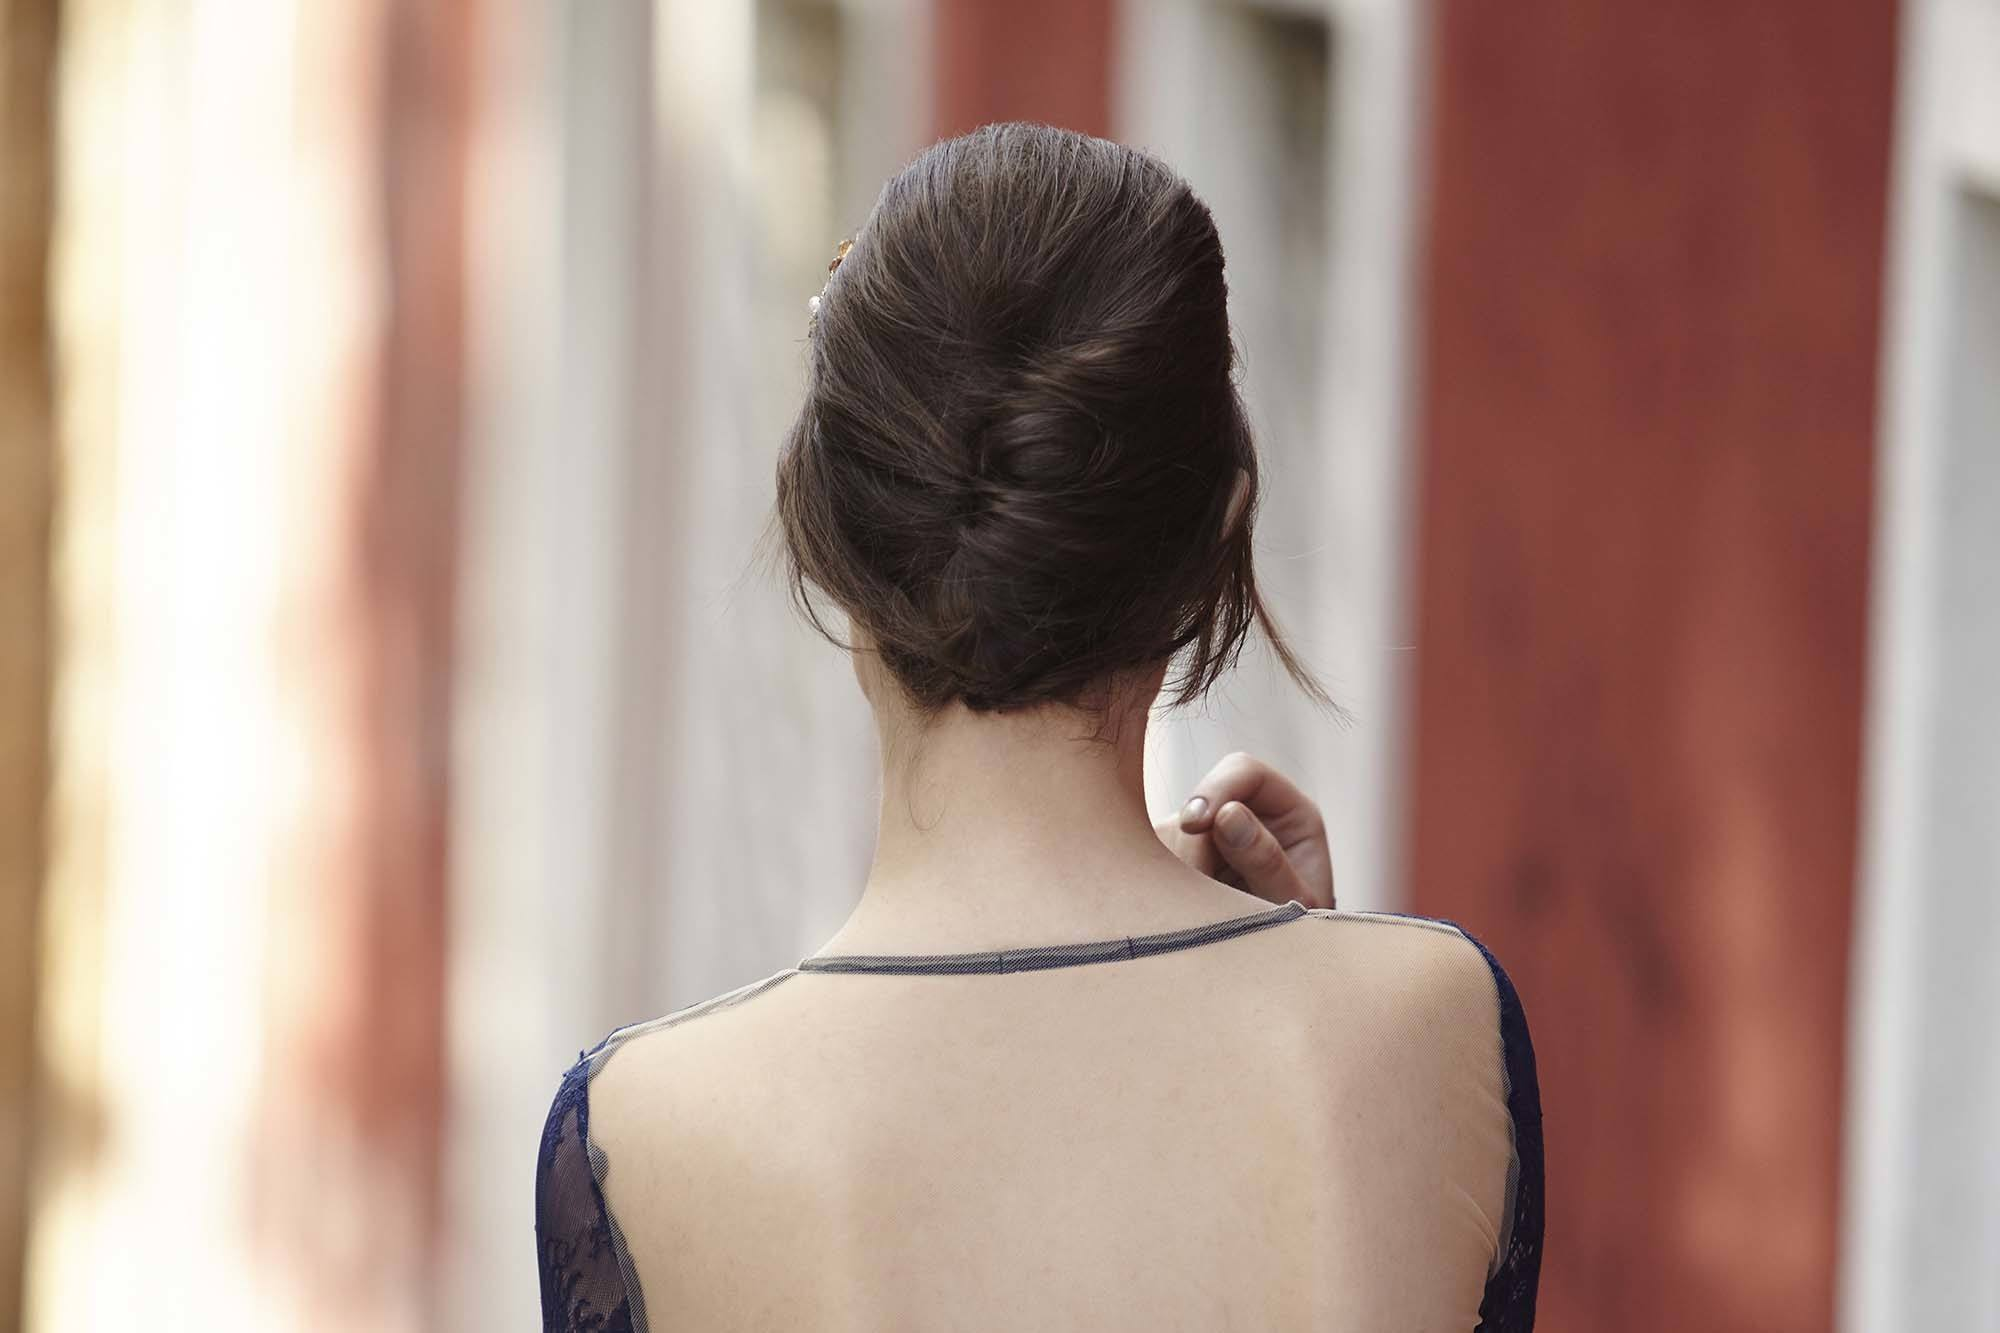 Vintage hairstyles for long hair: Back shot of a woman with long dark chocolate hair styled into a French twist updo wearing a blue dress and posing outside